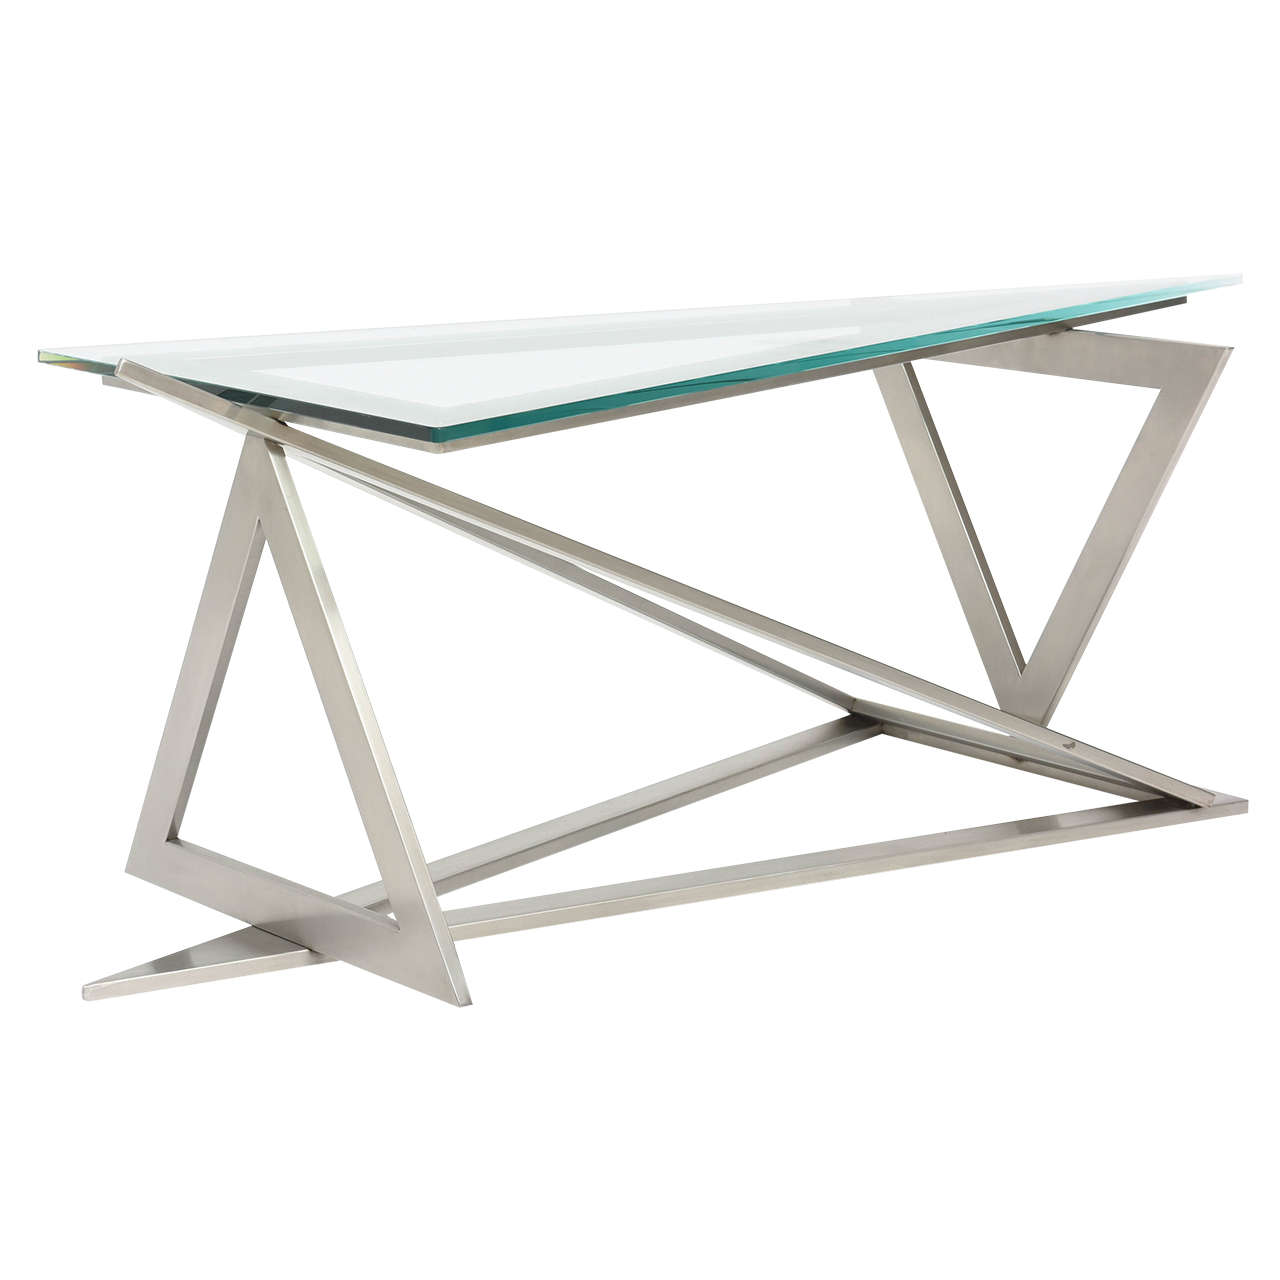 Attractive Italian Modern Stainless Steel And Glass Table Attributed To Giovanni  Offredi For Sale